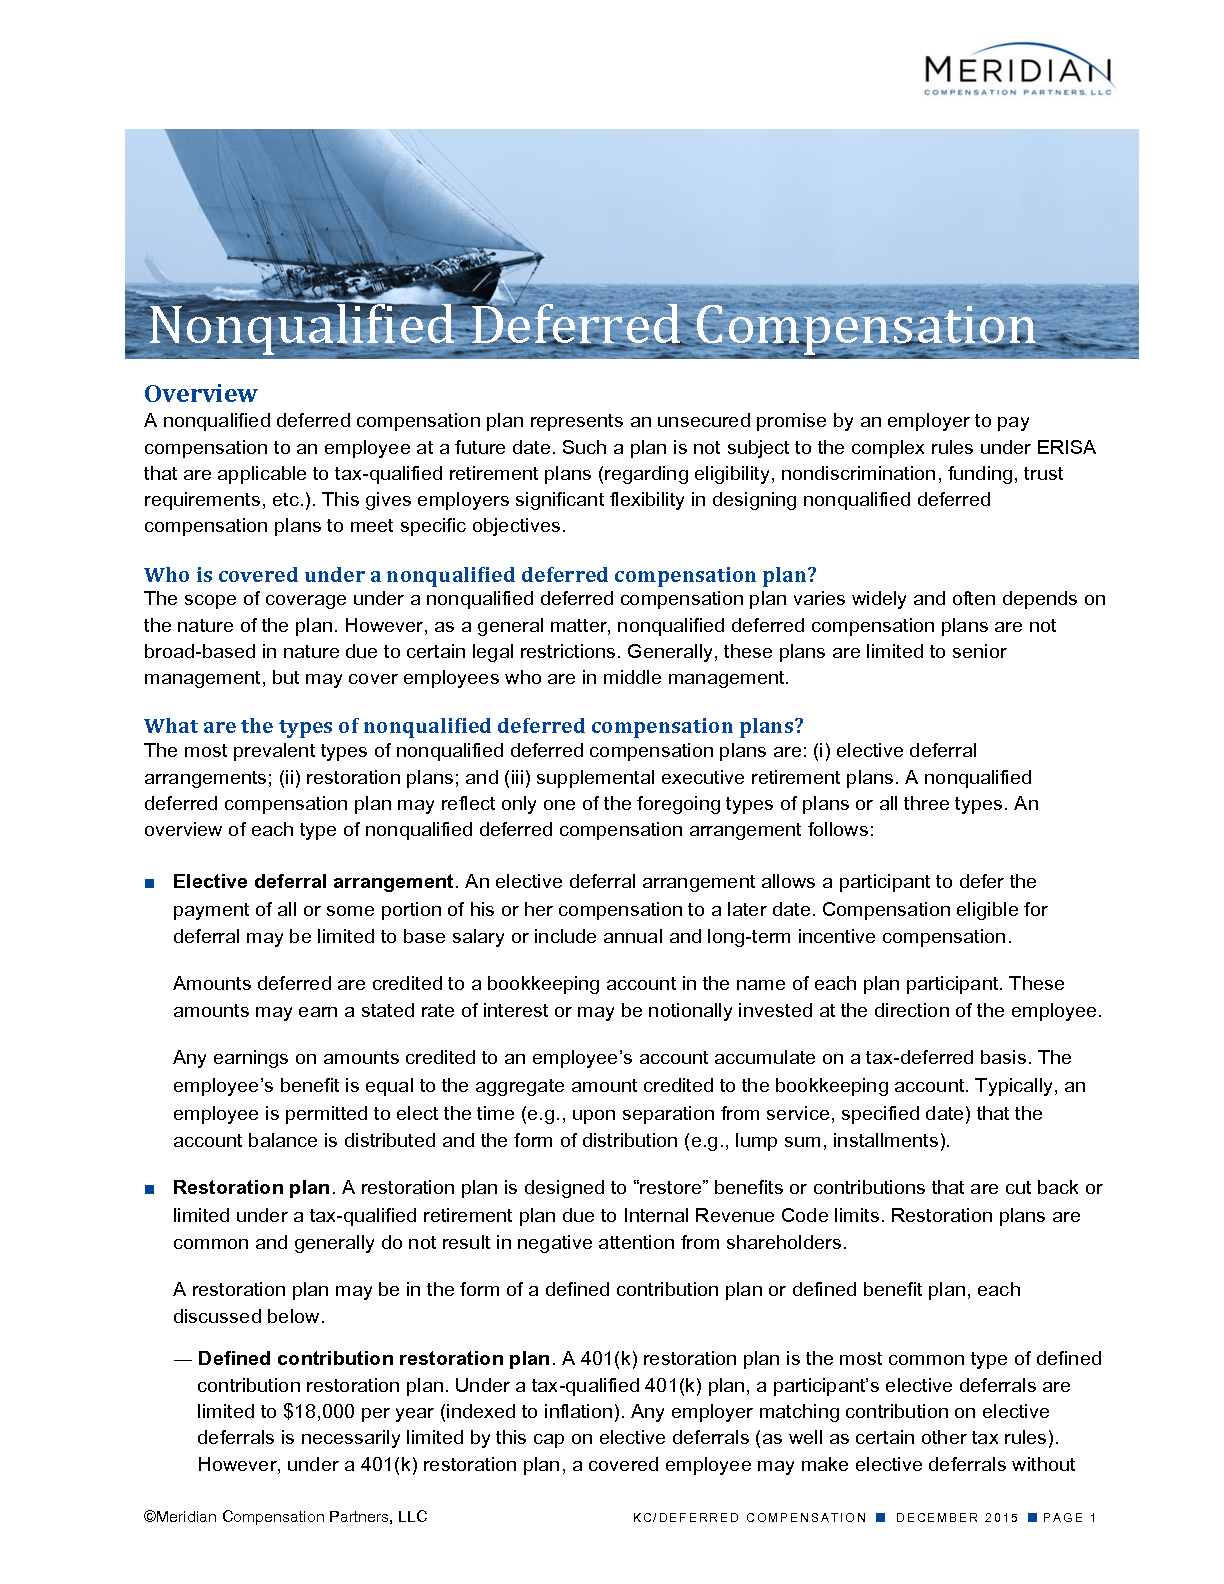 Nonqualified Deferred Compensation (PDF)